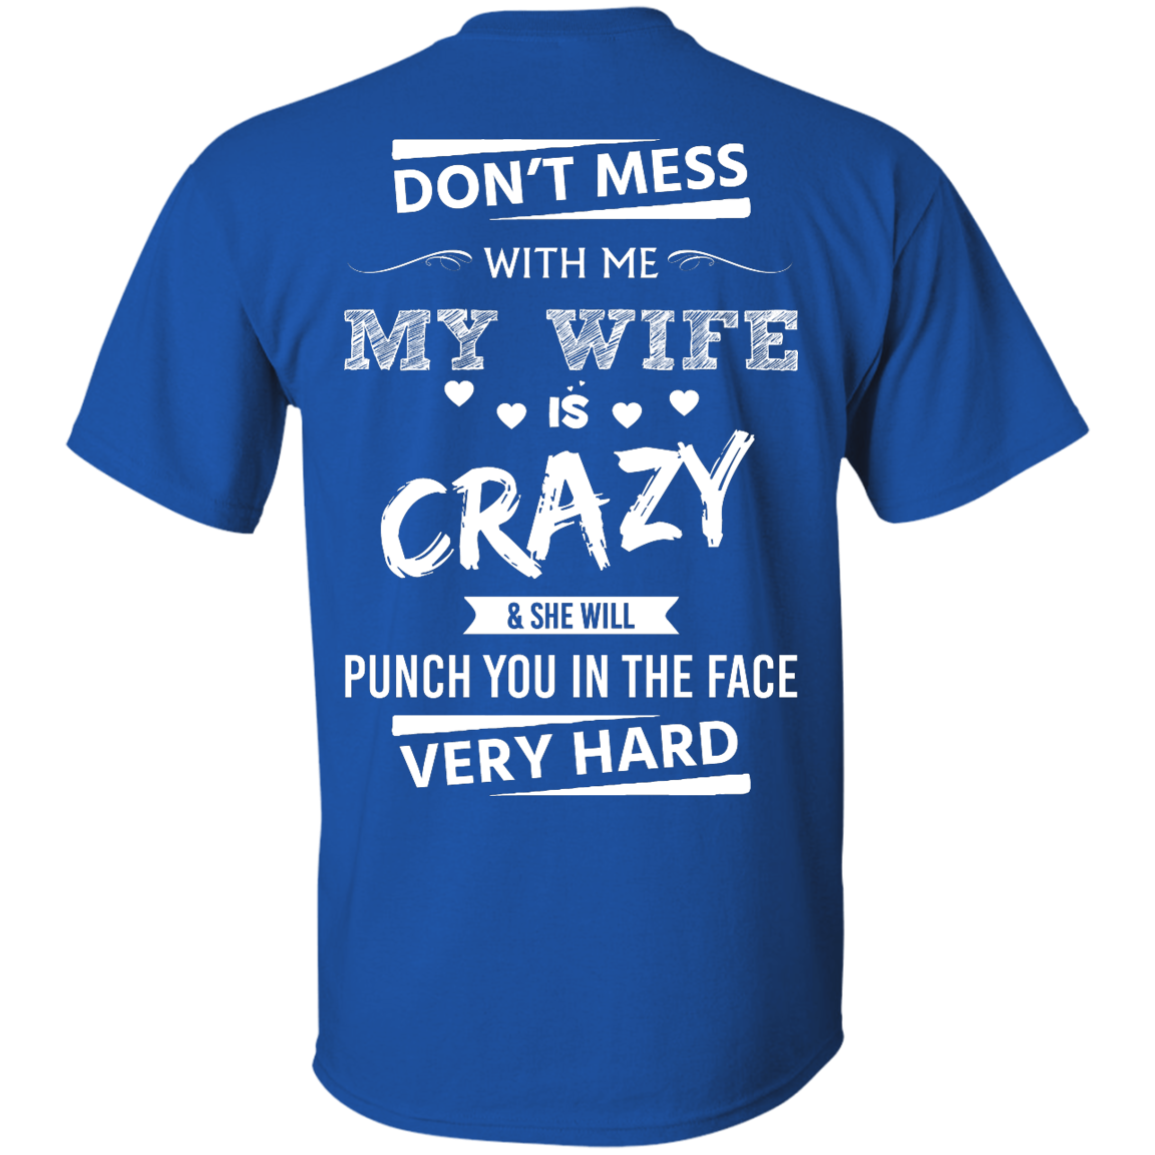 Funny Shirts Don't mess with me,my wife is crazy & she will punch you in the face very hard T shirt,Tank top & Hoodies